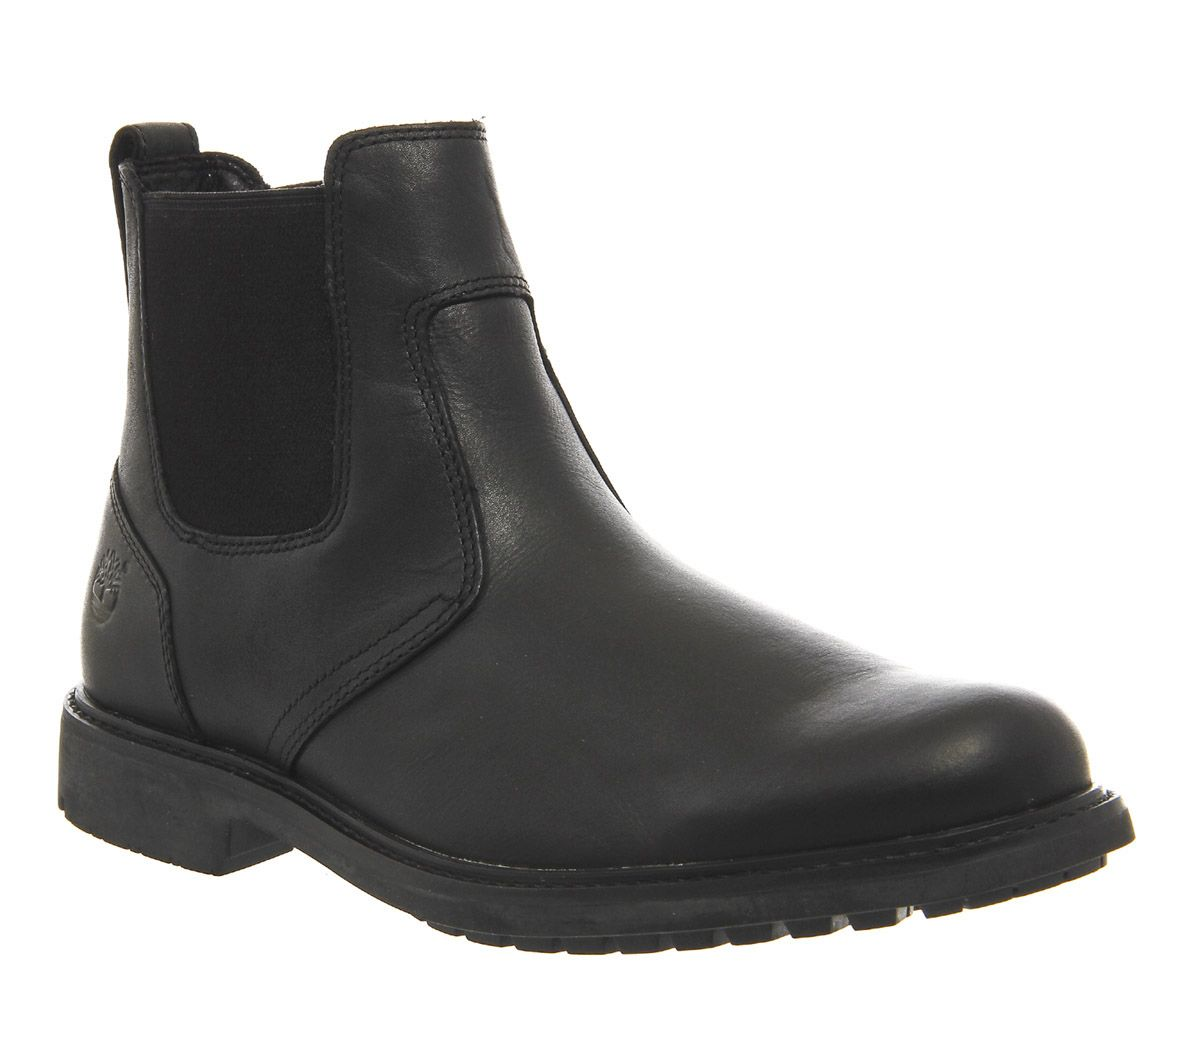 556a362ca Timberland Stormbuck Chelsea Boots Black Smooth Leather - Boots